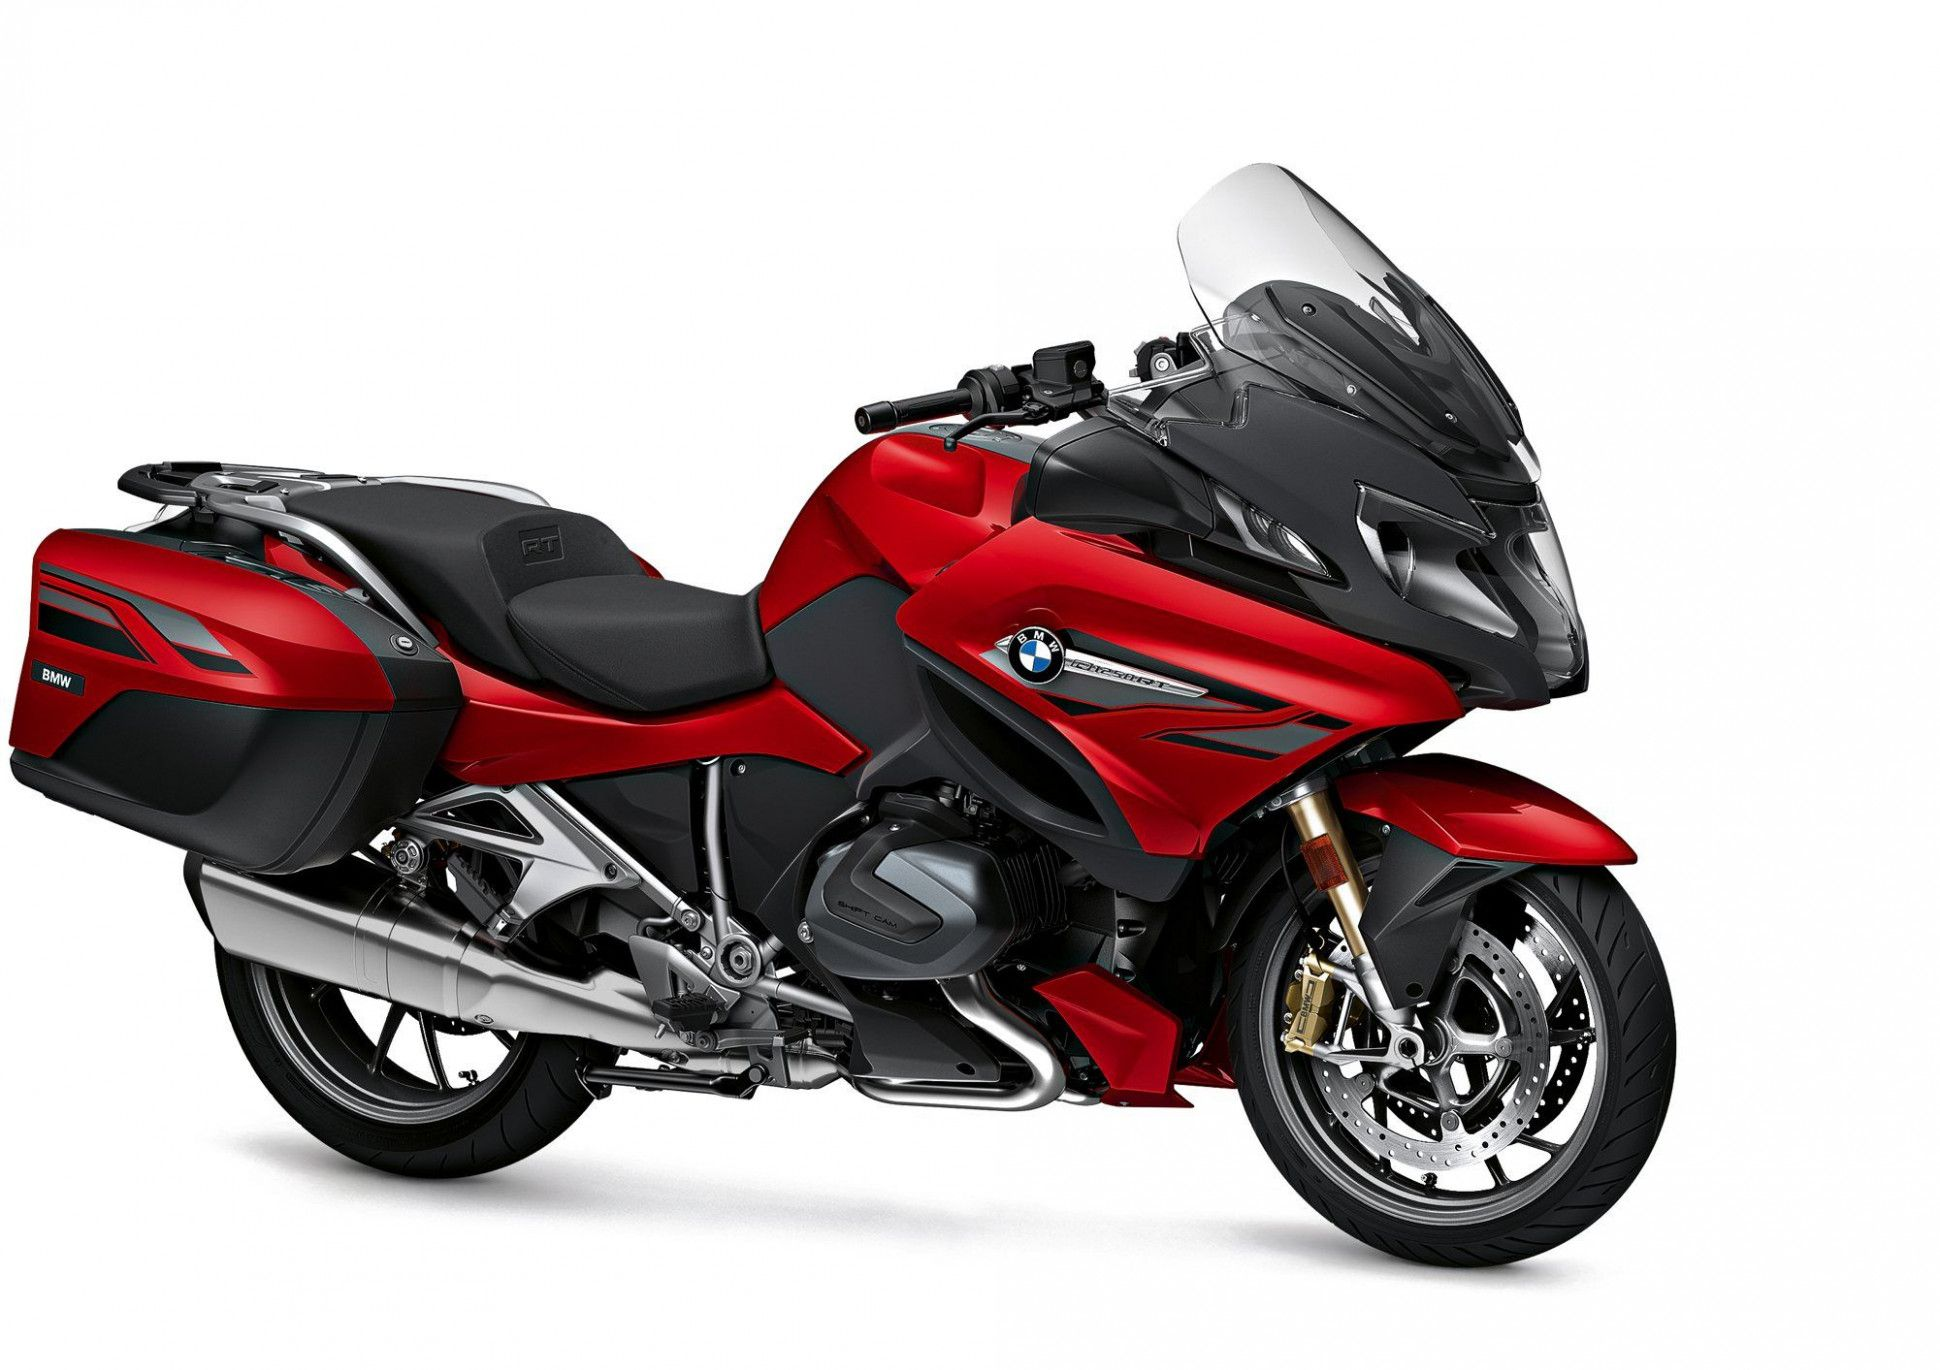 2020 Bmw R1200rt Colours In 2020 Bmw R1200rt Bike Bmw Bmw